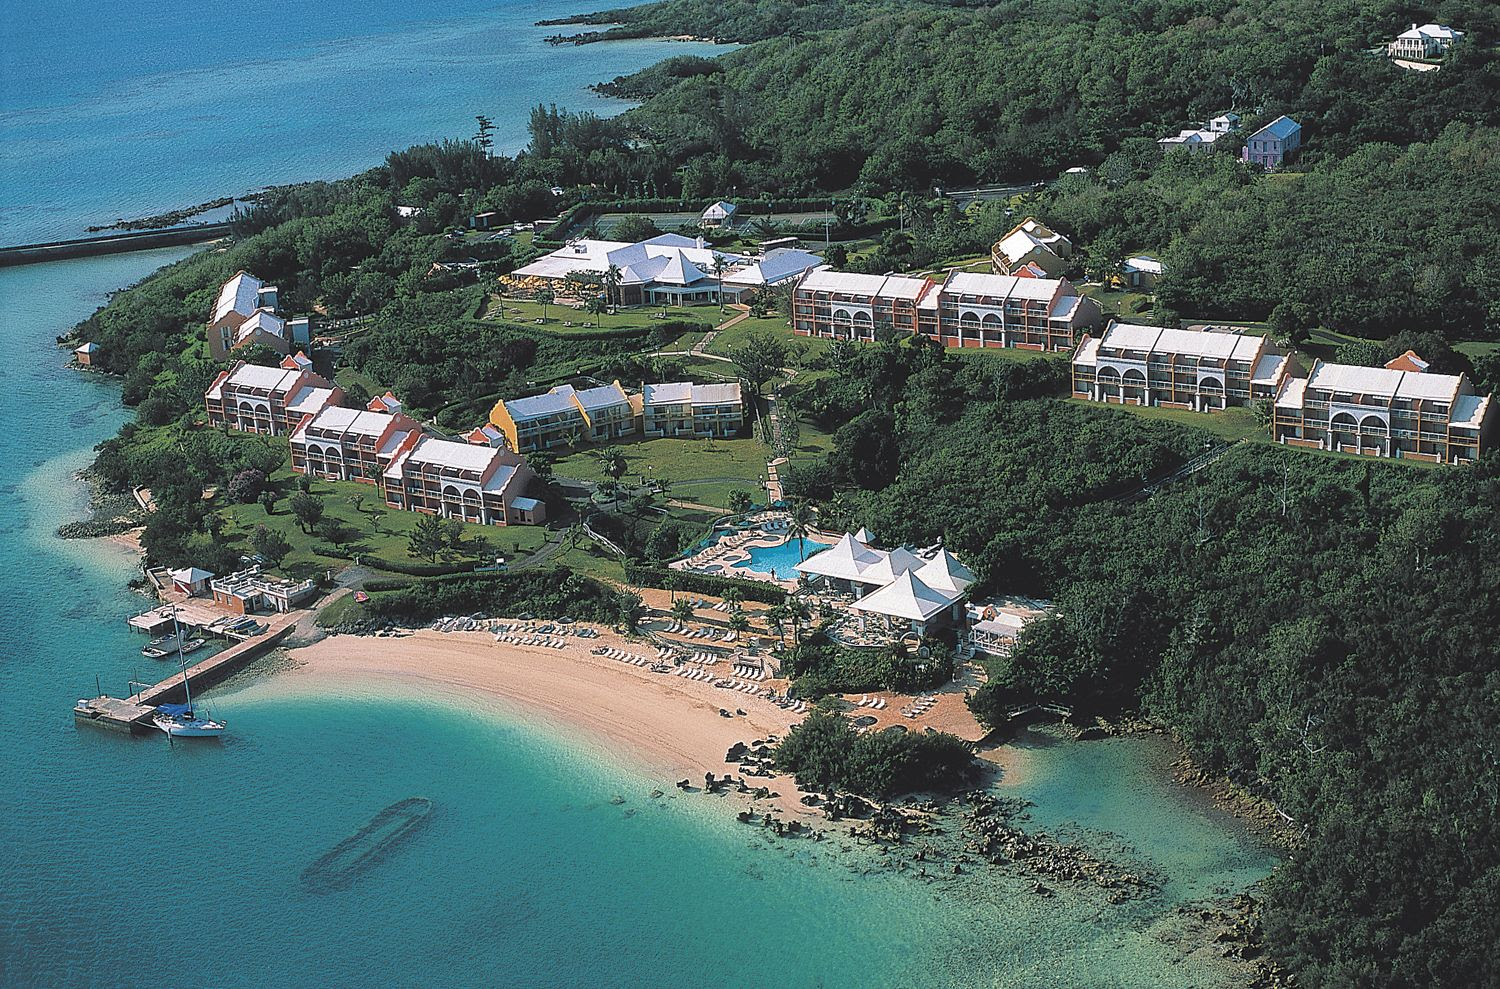 Grotto Bay Bermuda  Bermuda is where I want to be